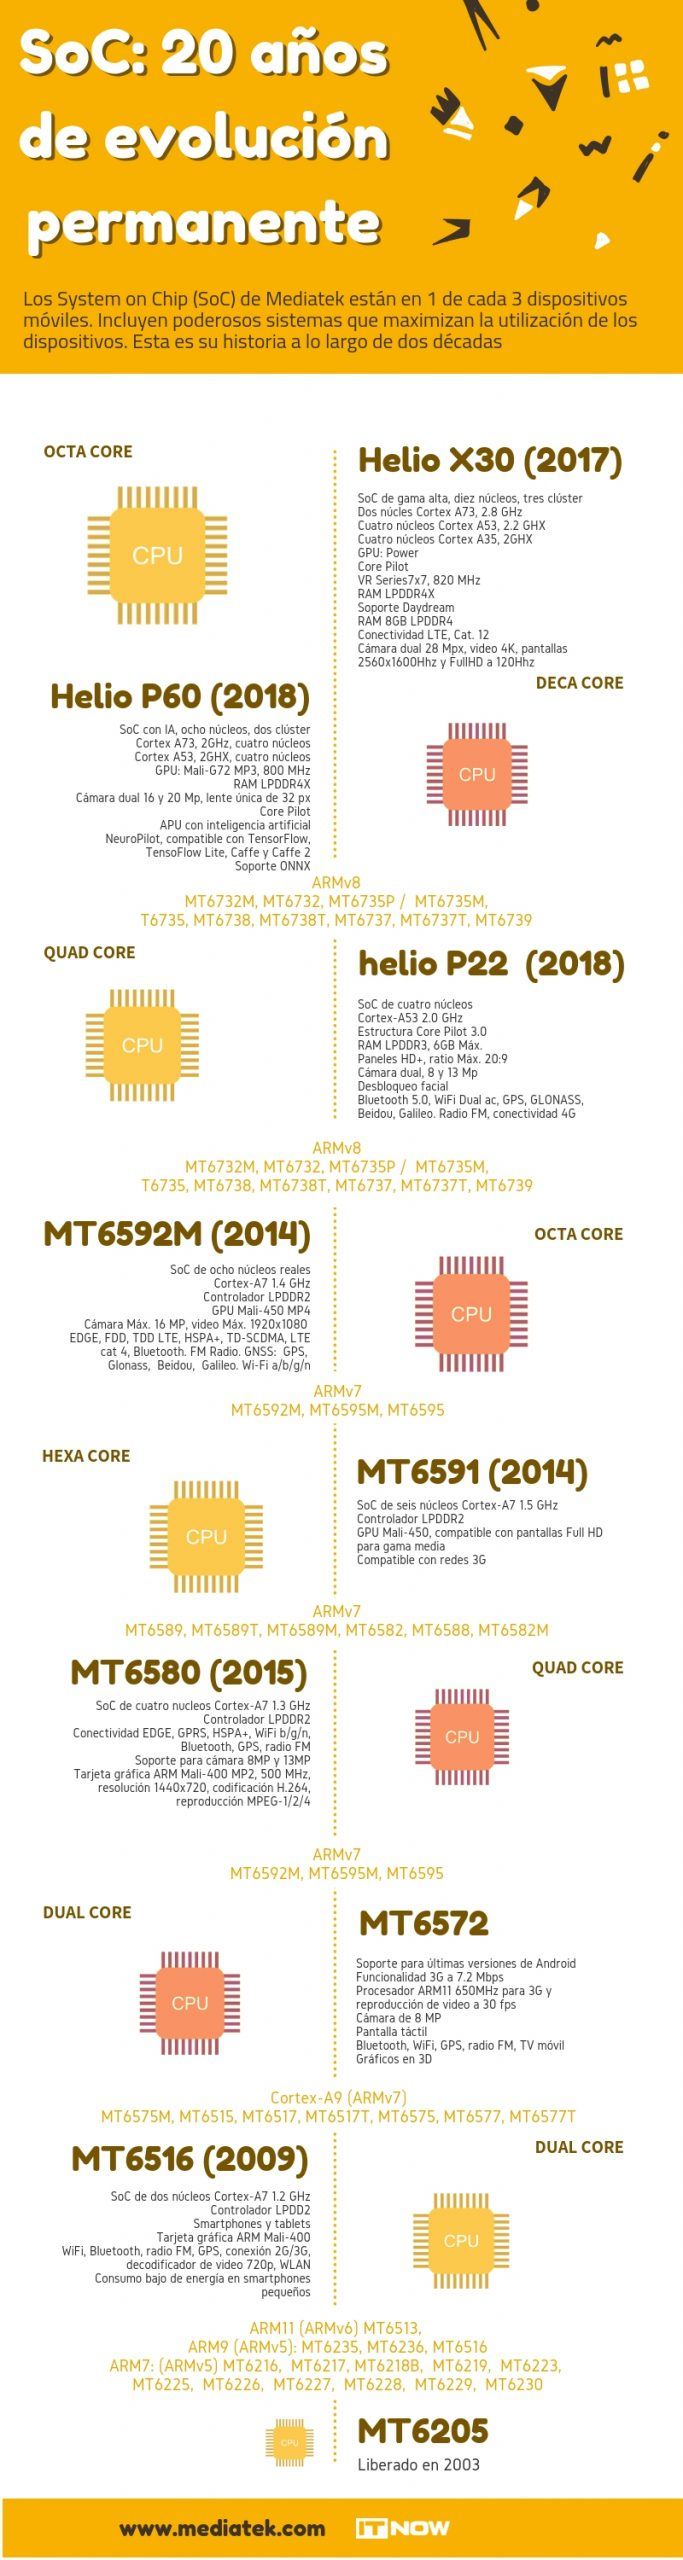 mediatek system on chip soc revista it now jjlopezt